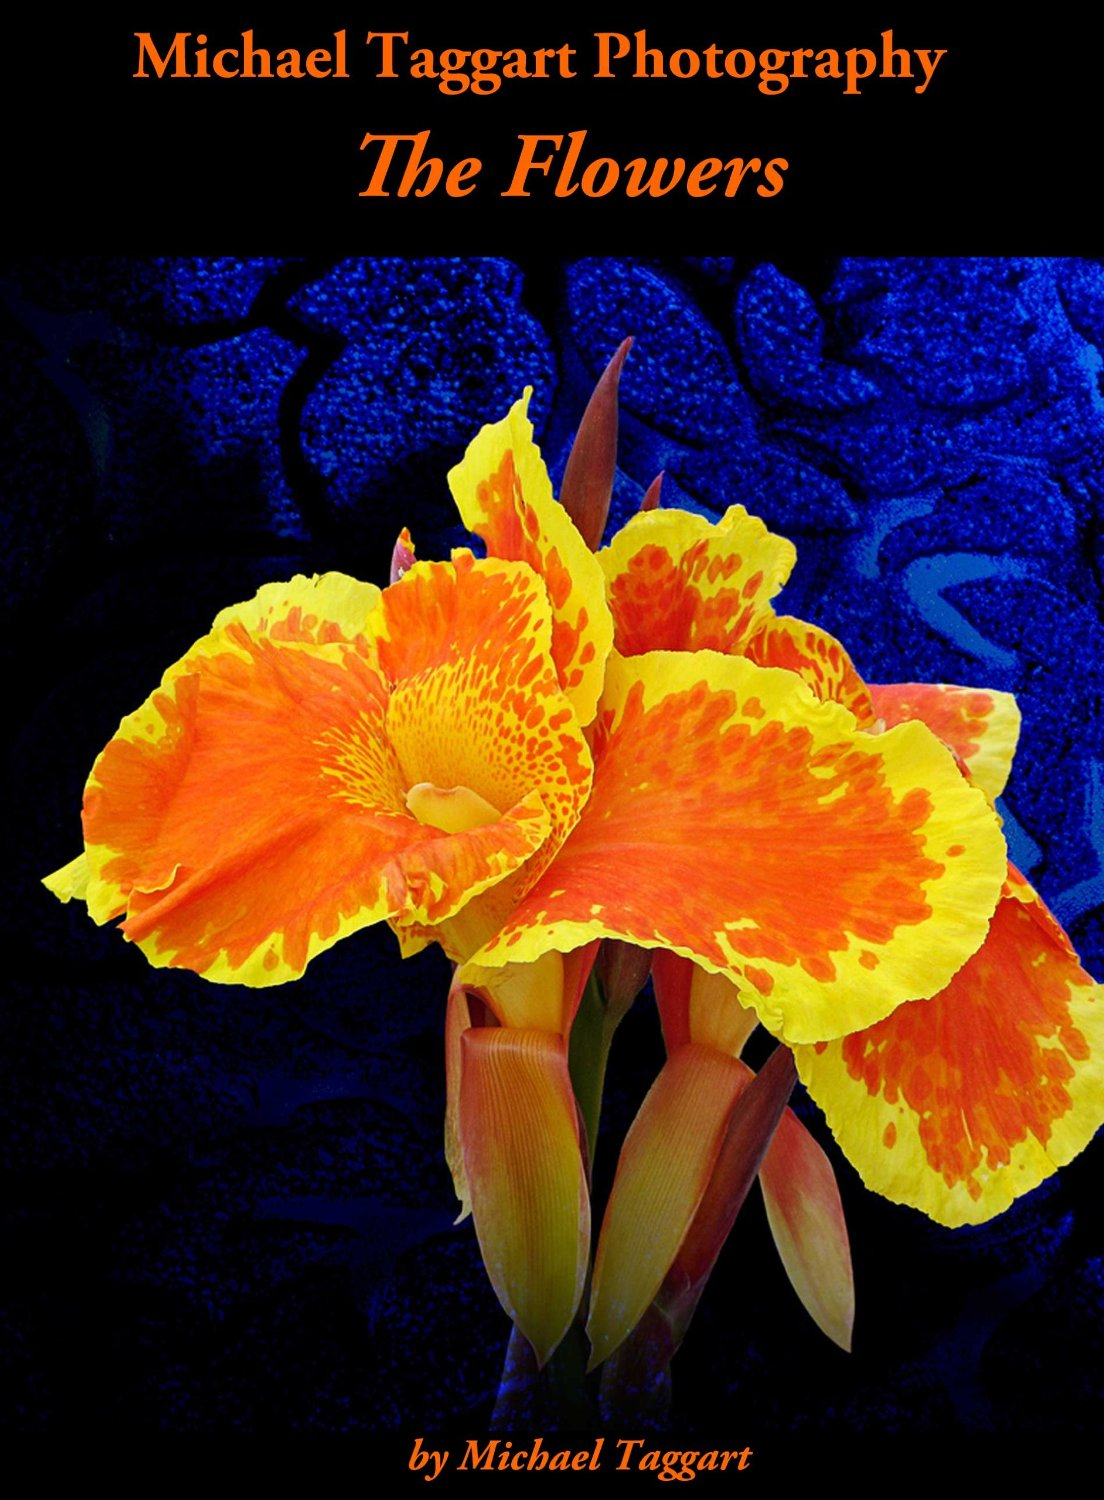 The Flowers cover - Flowers - Amazing Pictures by Michael Taggart Photography